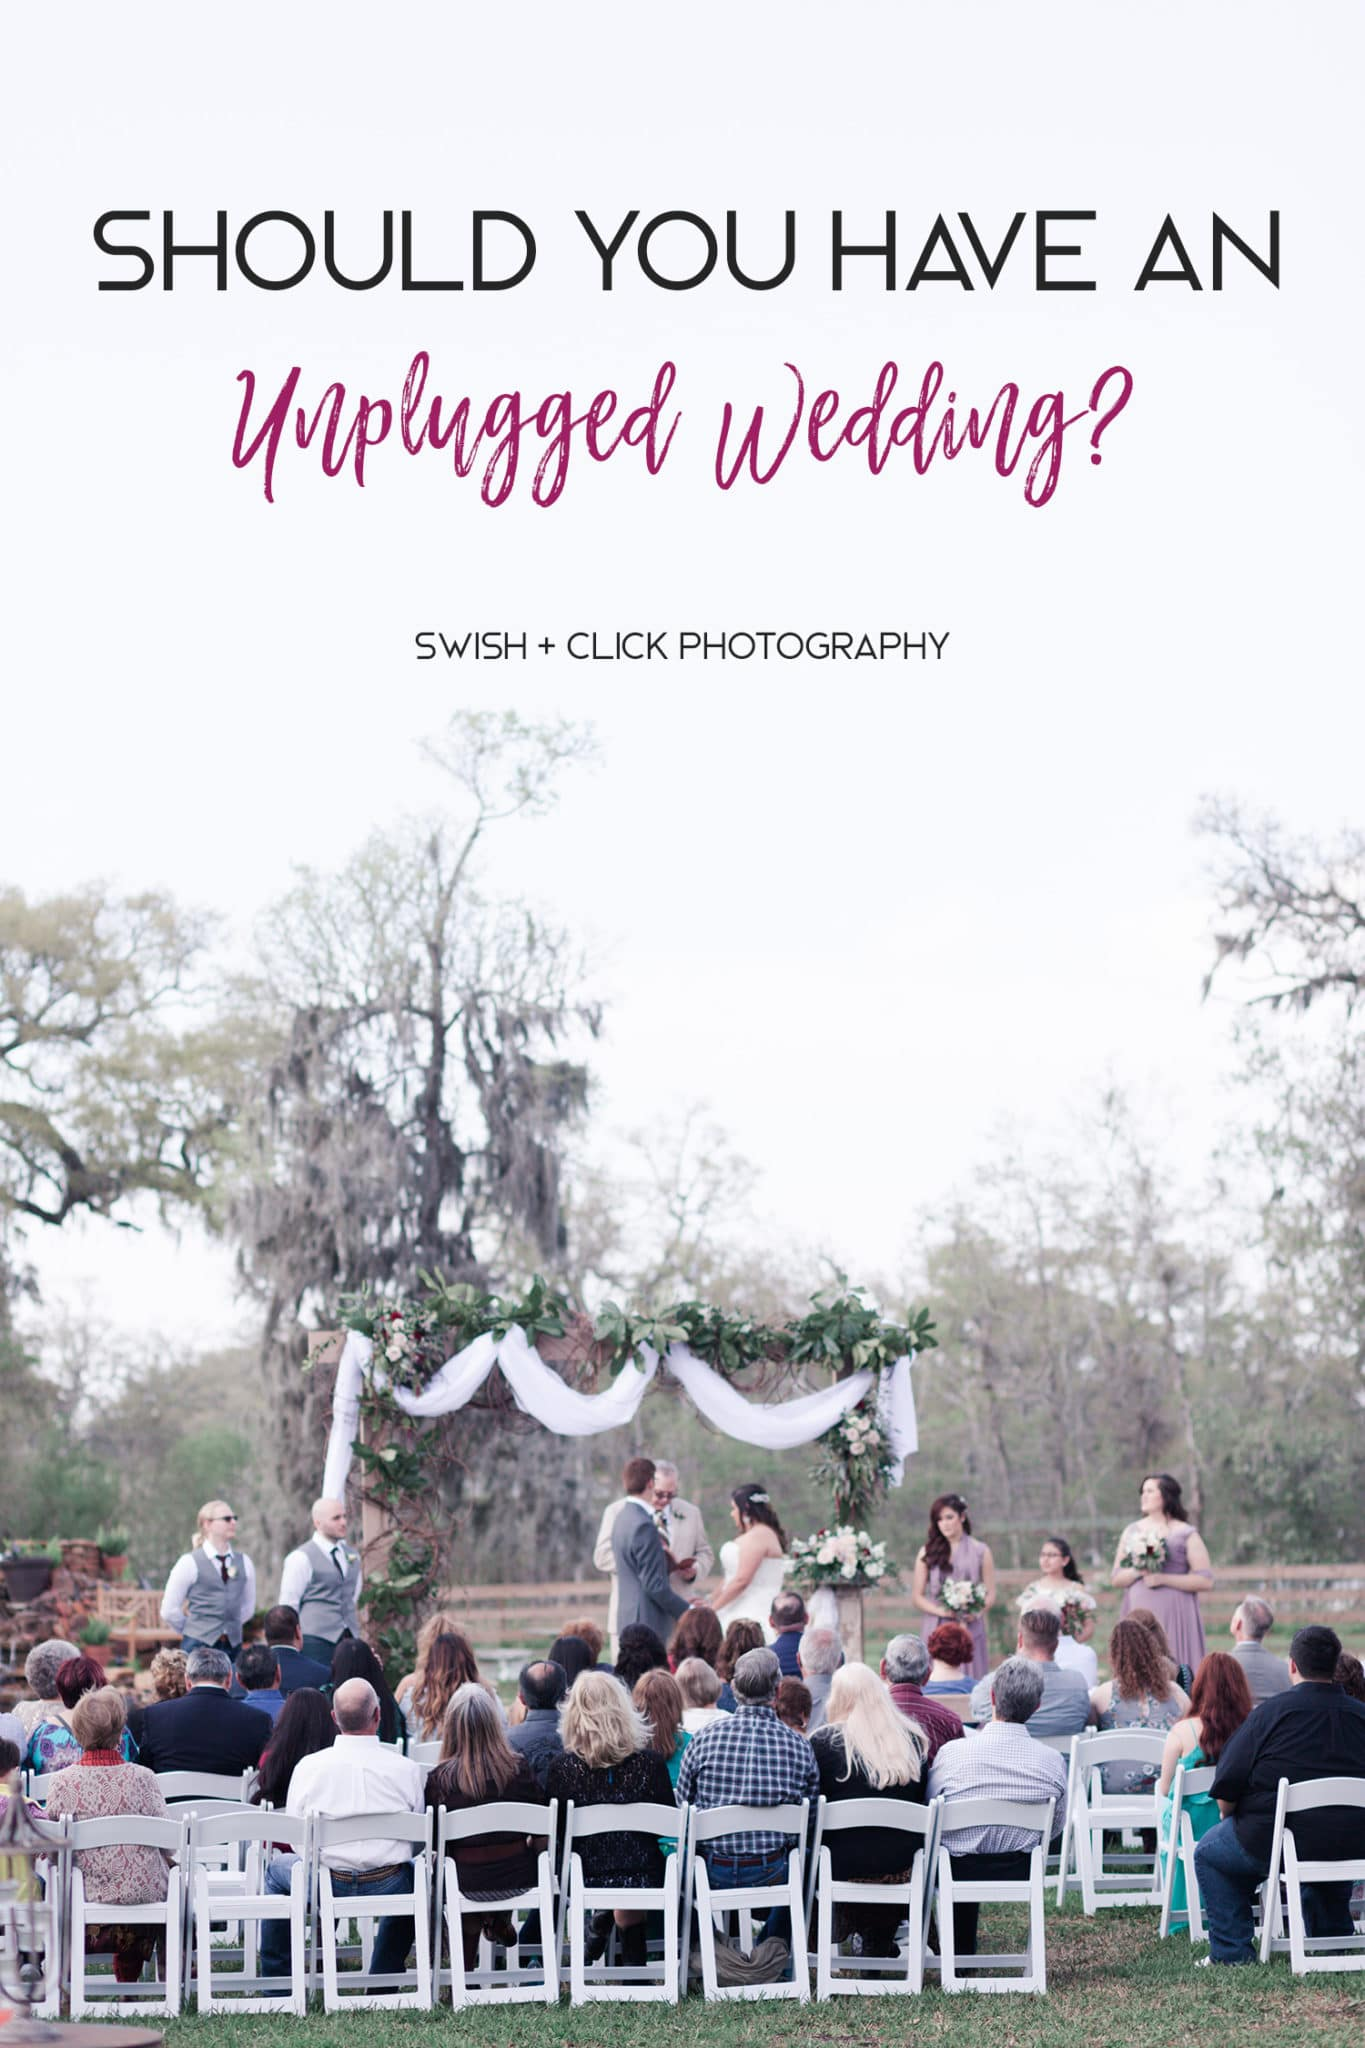 Should You Have an Unplugged Wedding?   Texas Wedding Photographer